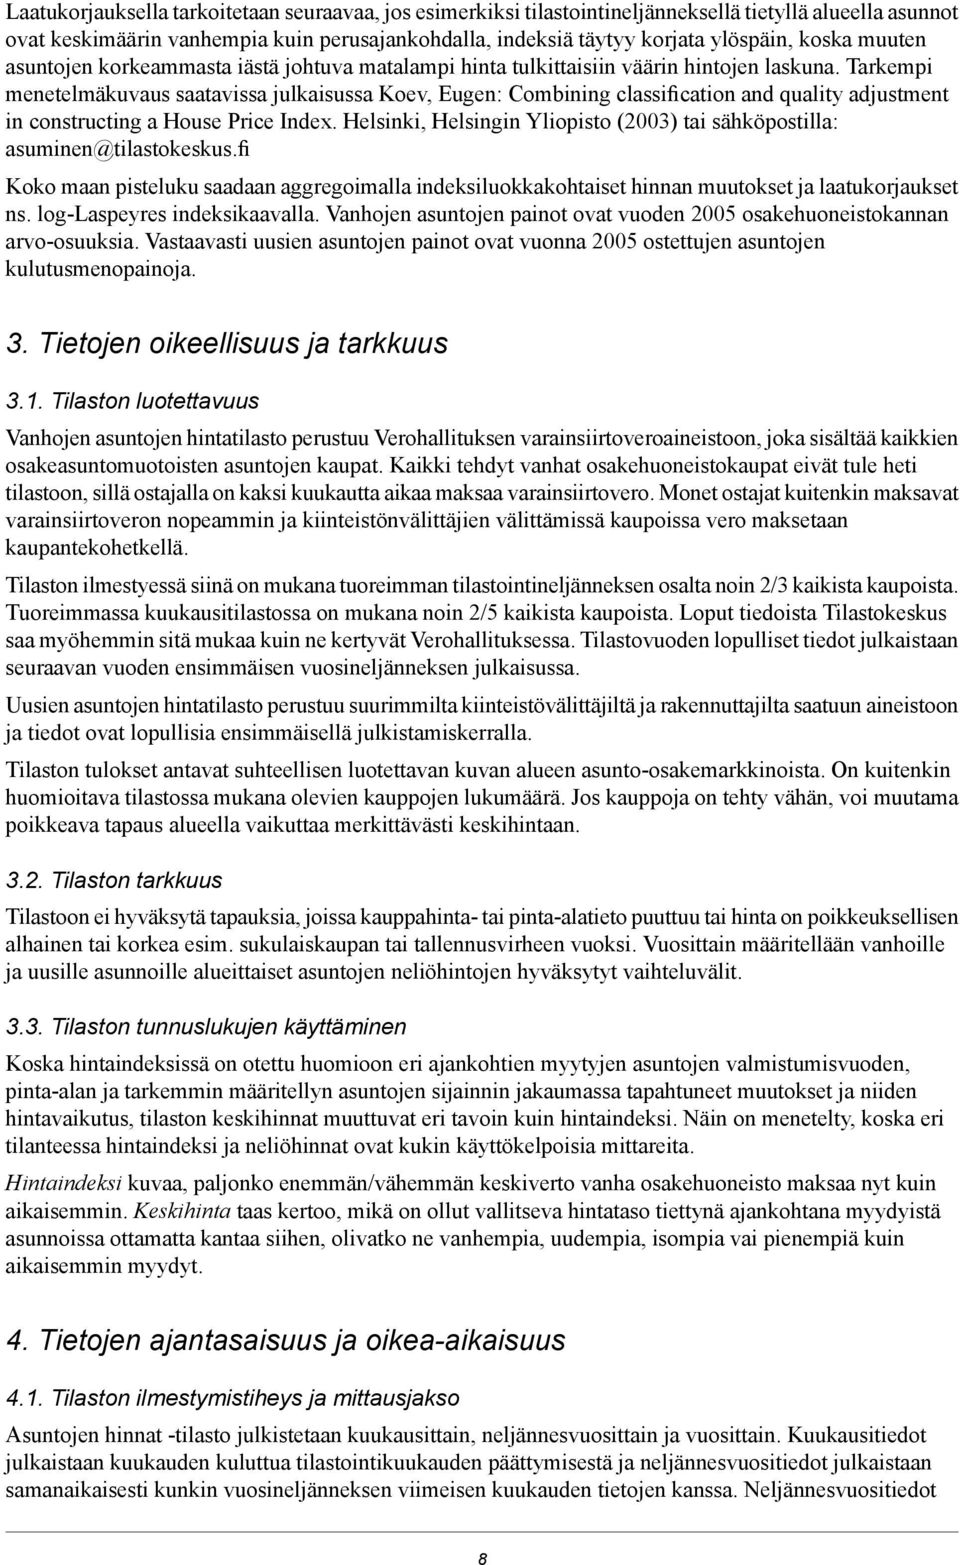 Tarkempi menetelmäkuvaus saatavissa julkaisussa Koev, Eugen: Combining classification and quality adjustment in constructing a House Price Index.